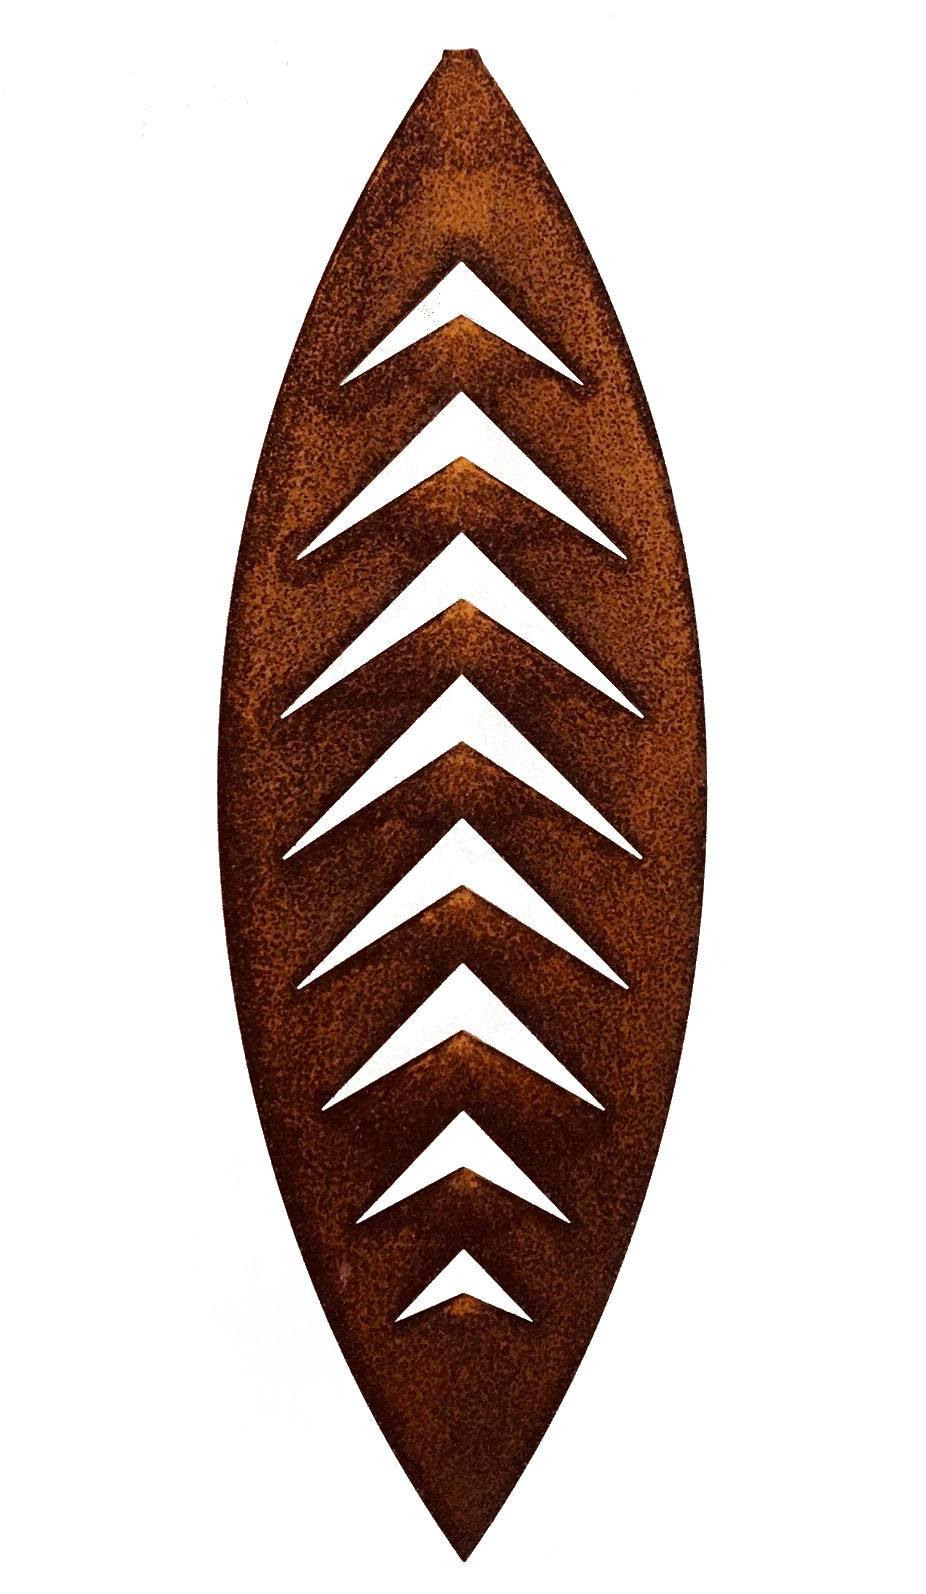 Hanging Swivel Leaf  Grounded Art NZ, corten, 400mm  $90.00